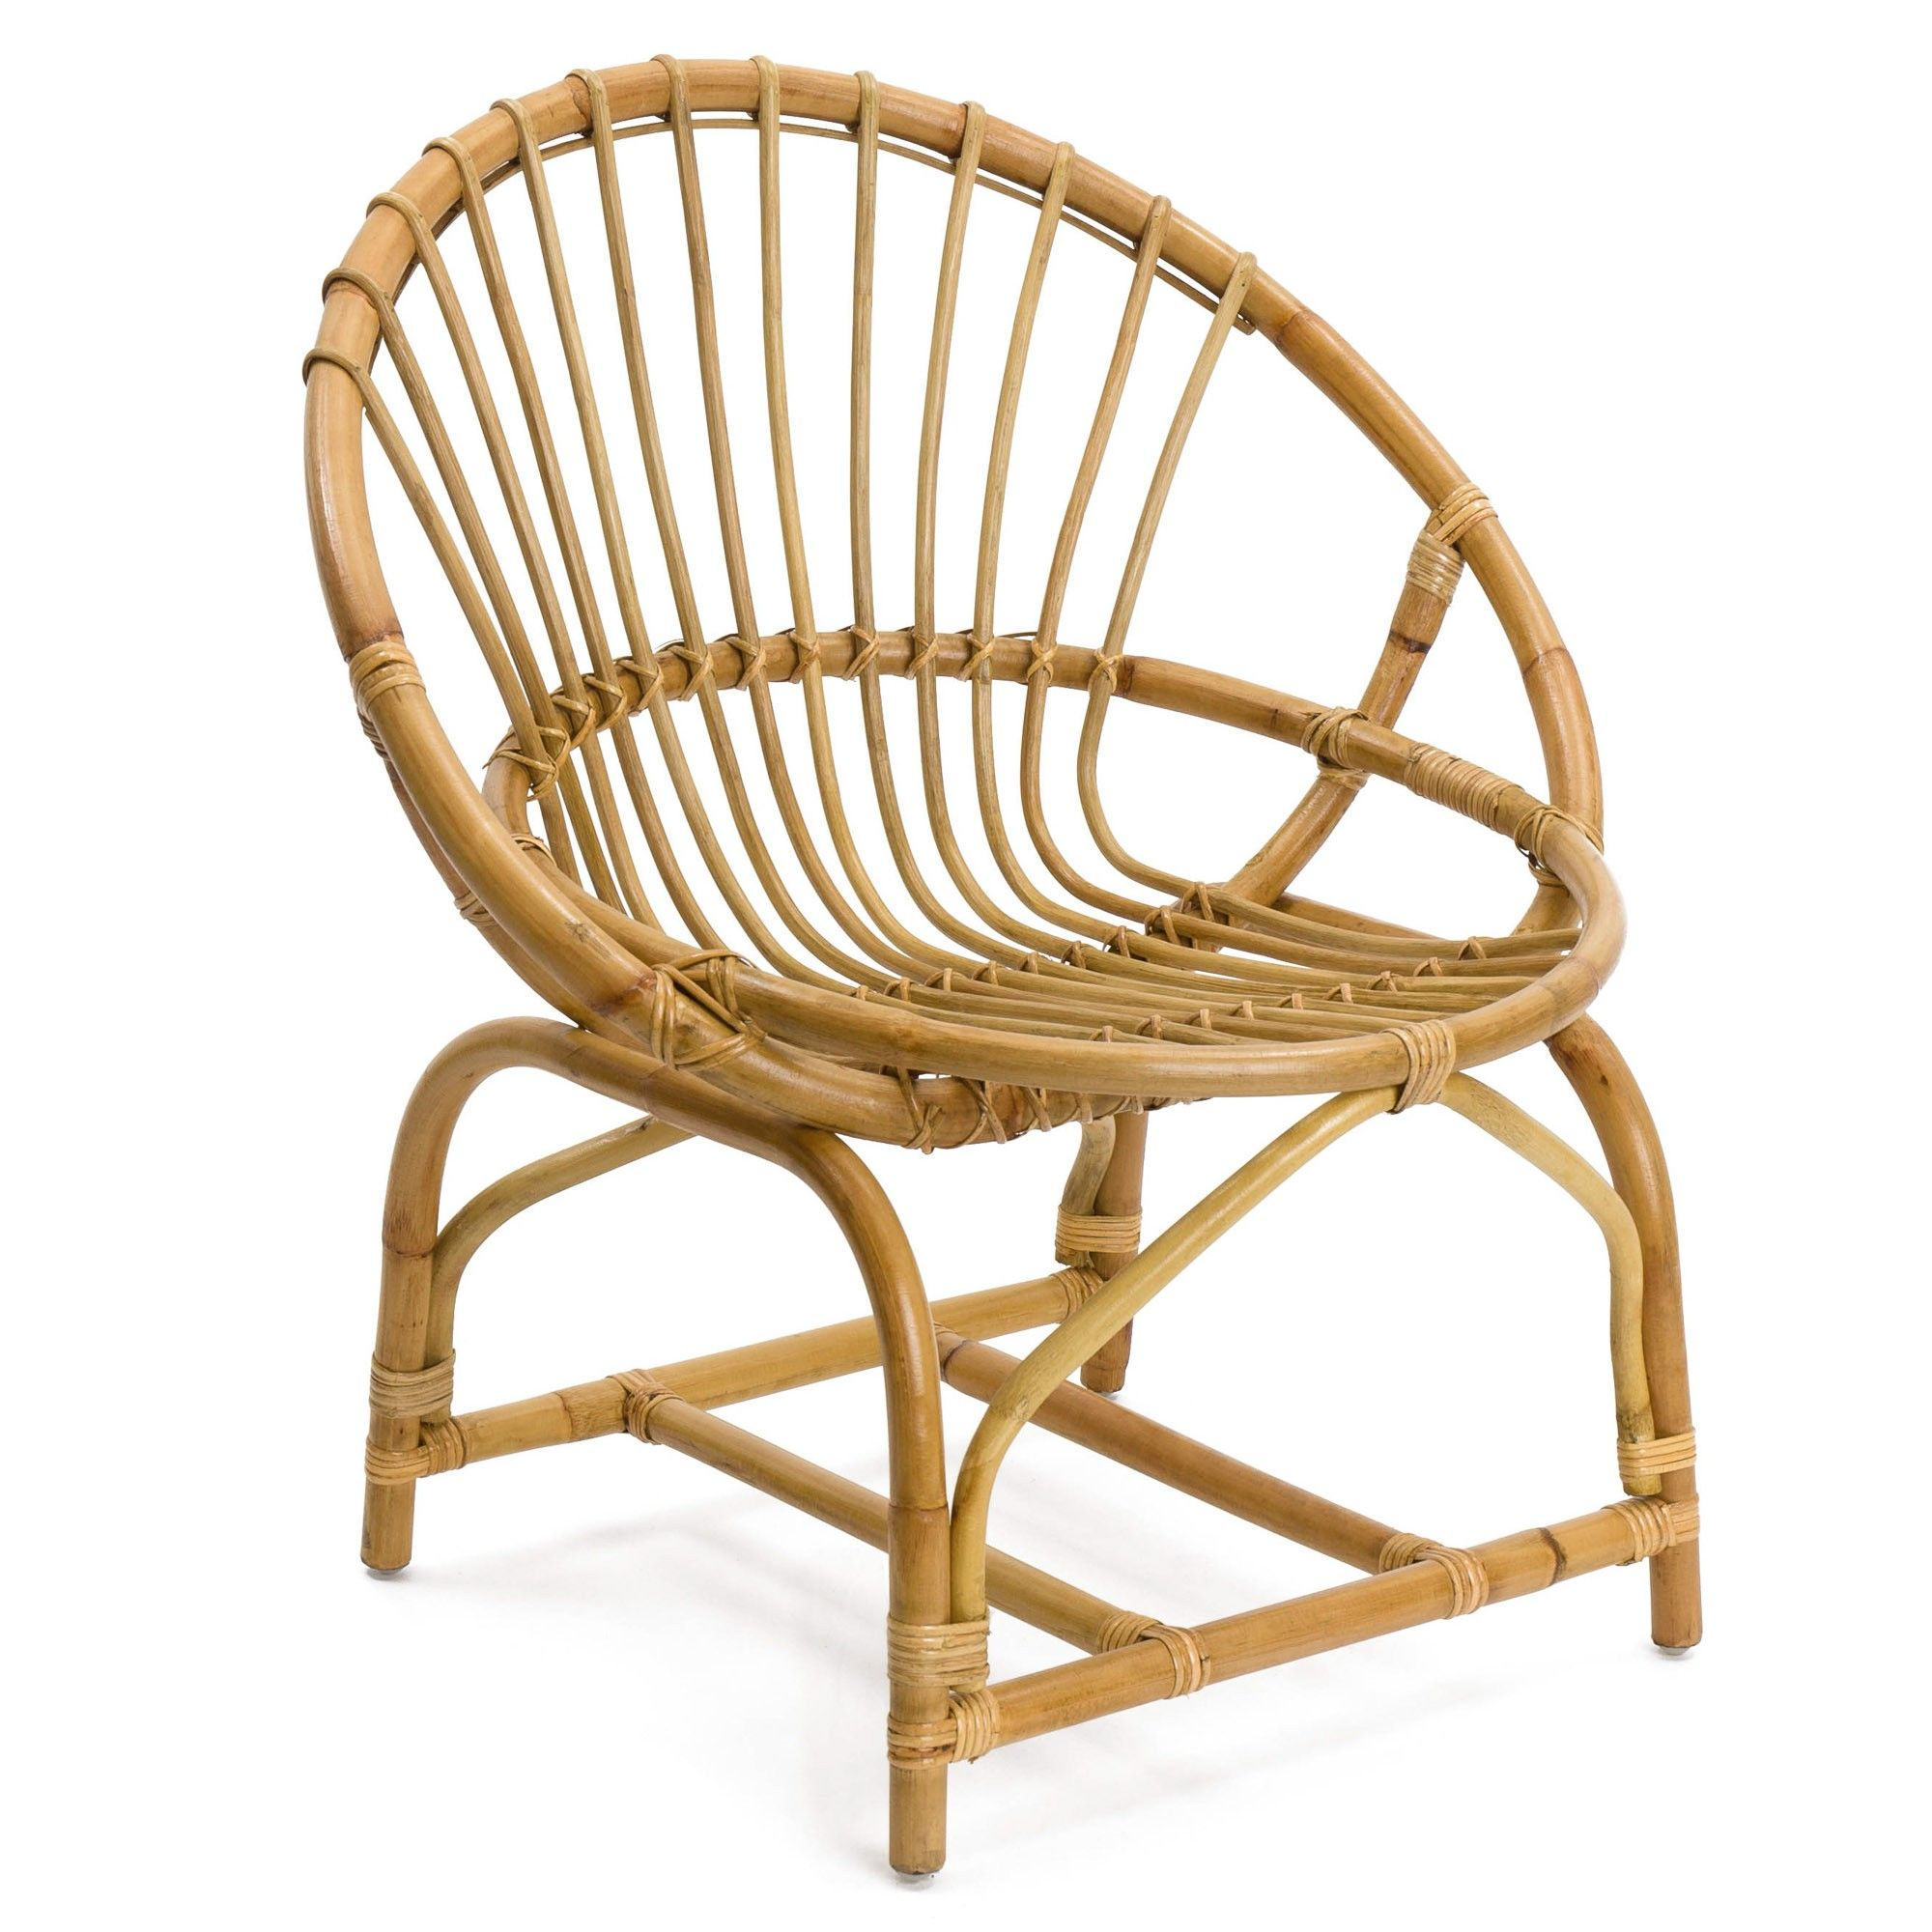 Gartenstühle Rattan Holz Classic Round Backed Wicker Chair Handcrafted From 100 Rattan